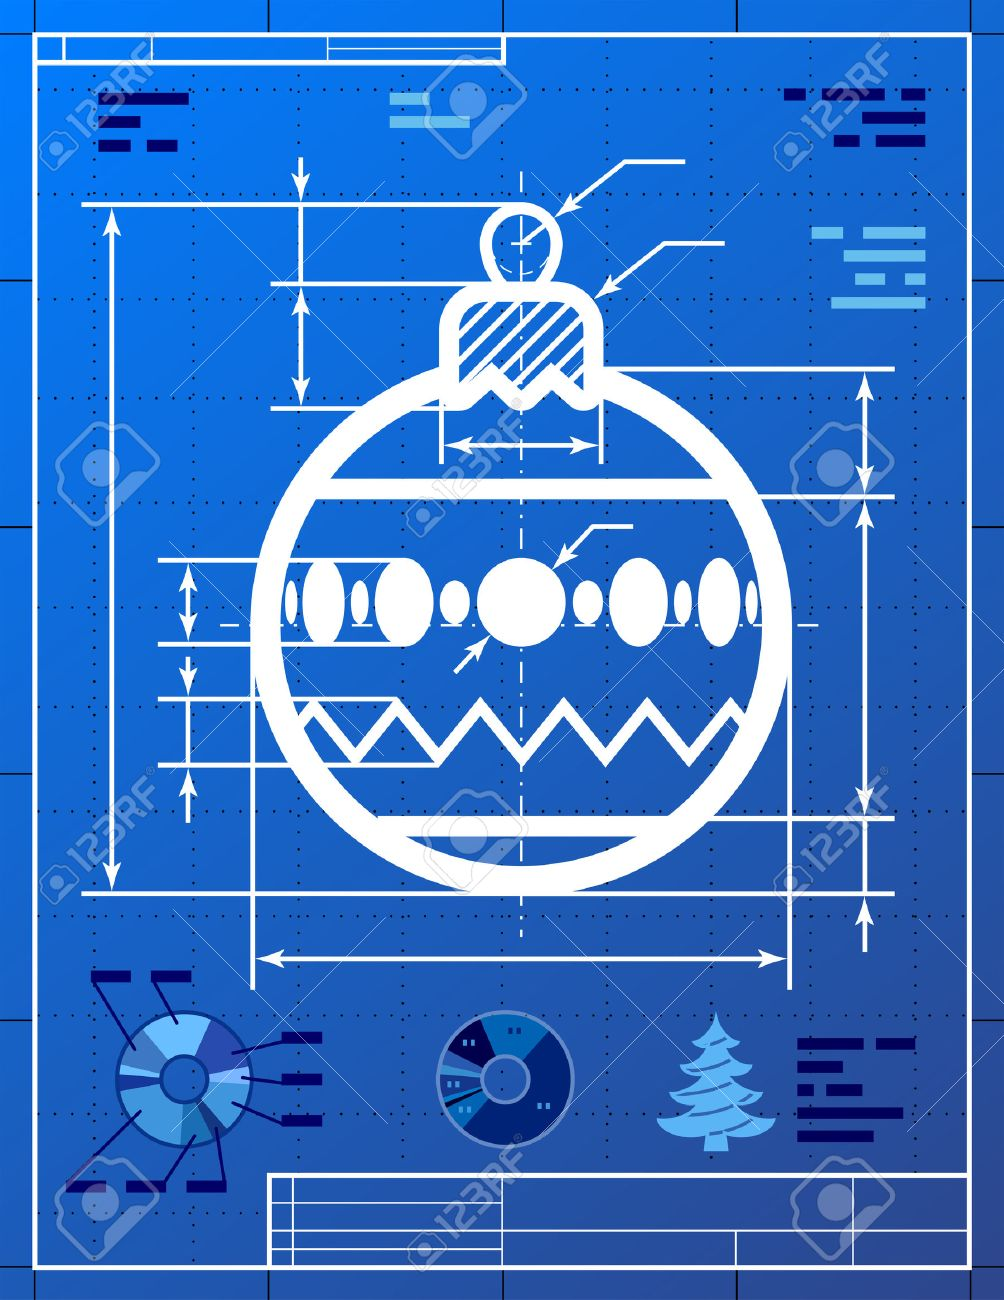 Christmas tree ball symbol like blueprint drawing stylized drawing christmas tree ball symbol like blueprint drawing stylized drawing of decoration bauble sign on blueprint paper malvernweather Gallery